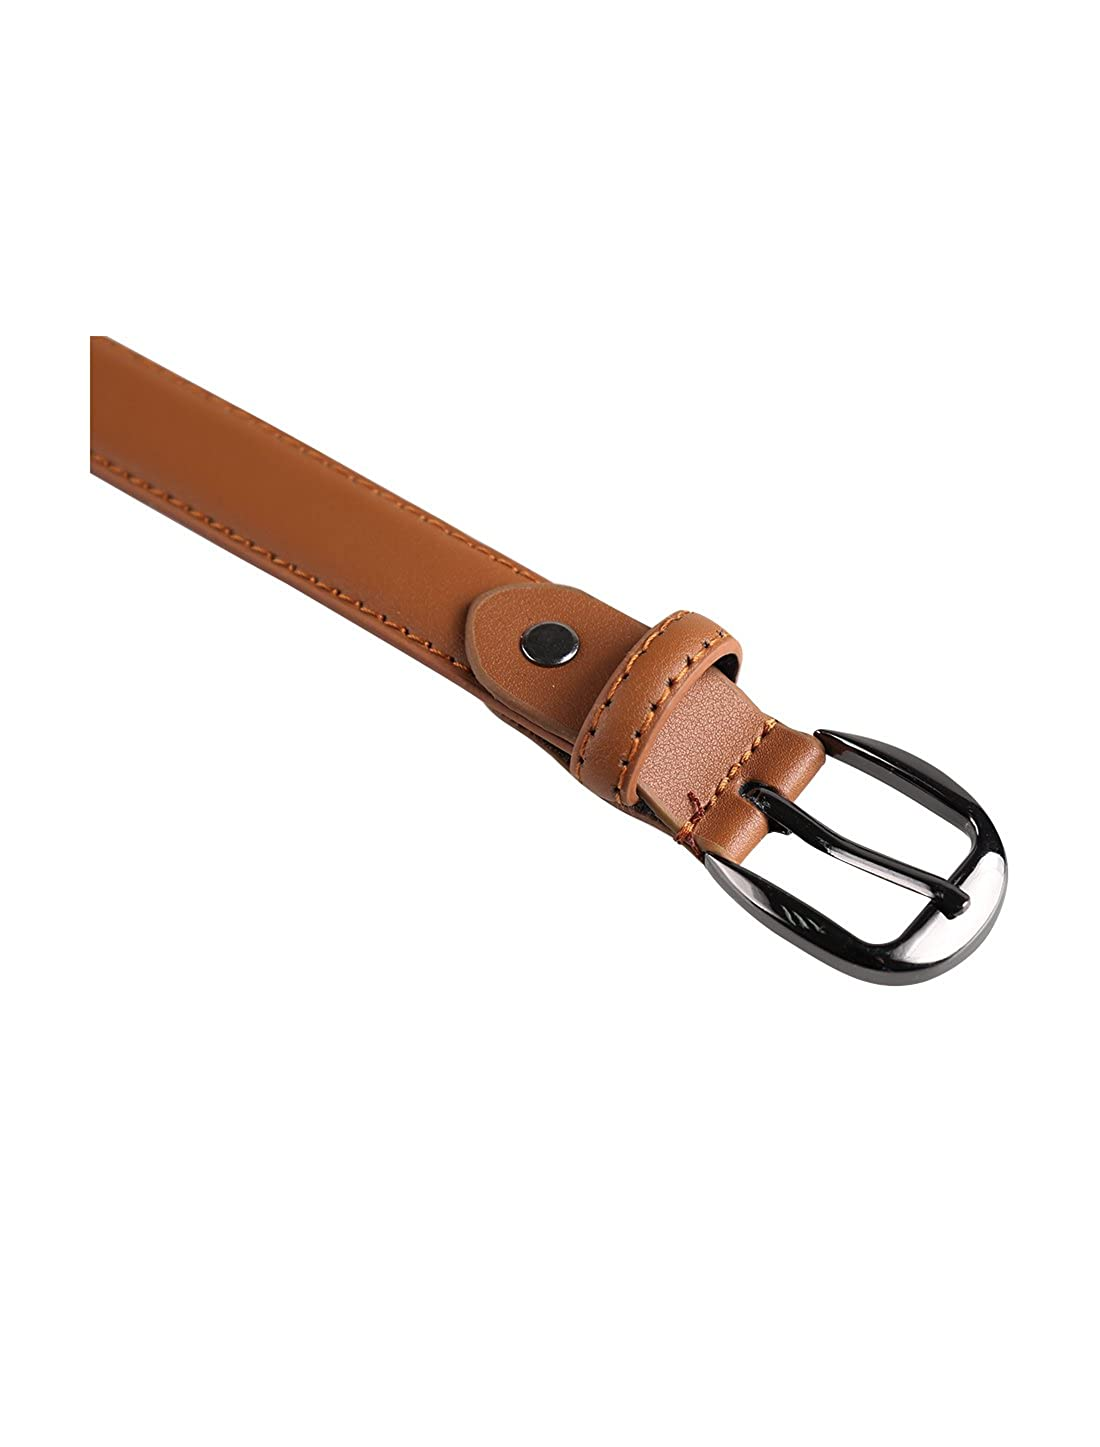 uxcell Women Leather Belt for Jeans Pants with Classic Alloy Buckle Width 1